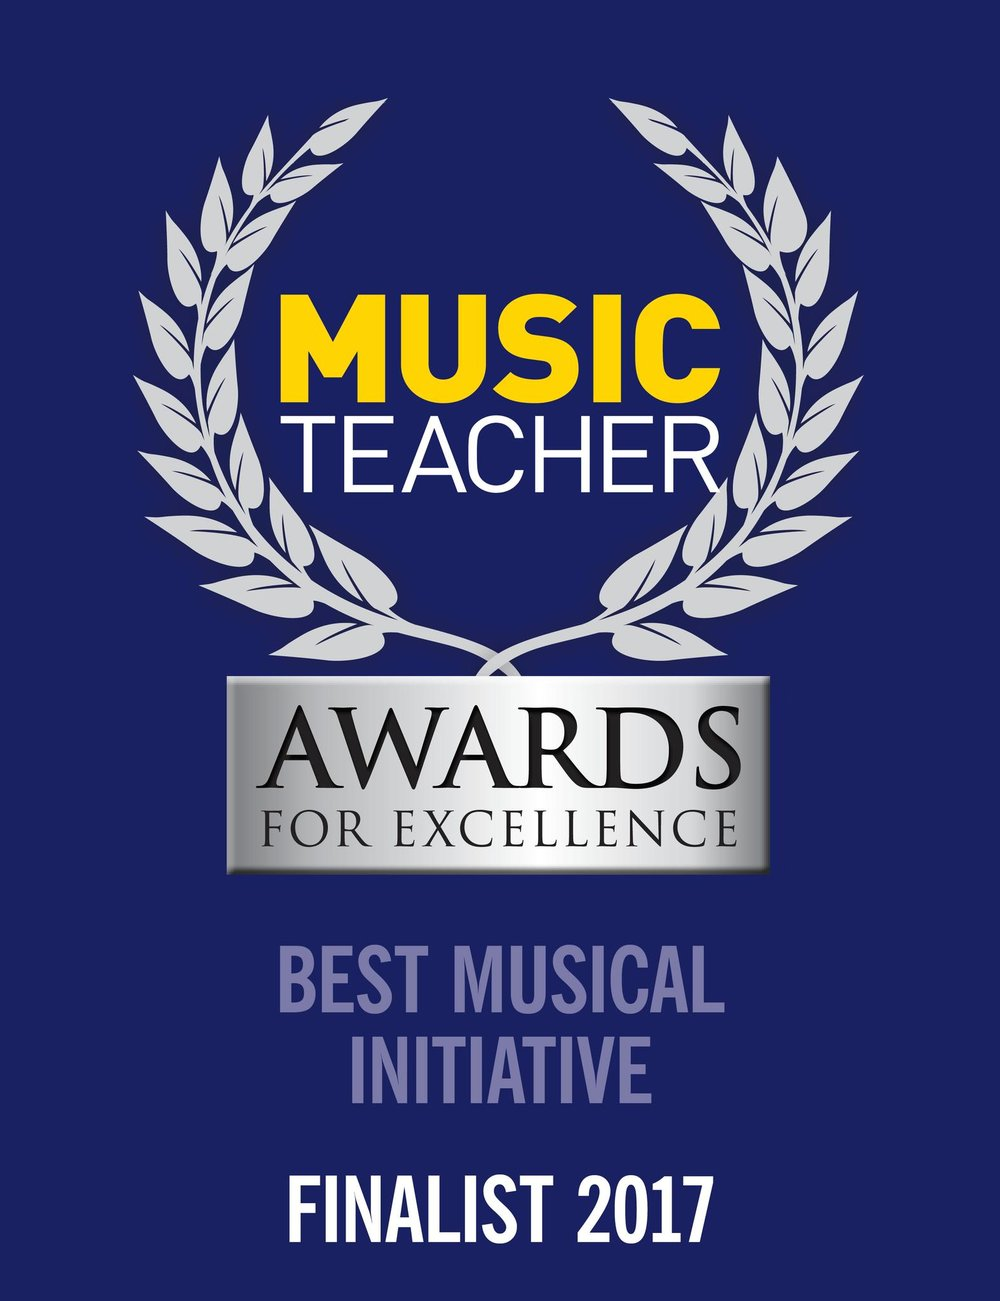 MTAwards17-Musical-Initiative-Award-Finalist-Badge.jpg